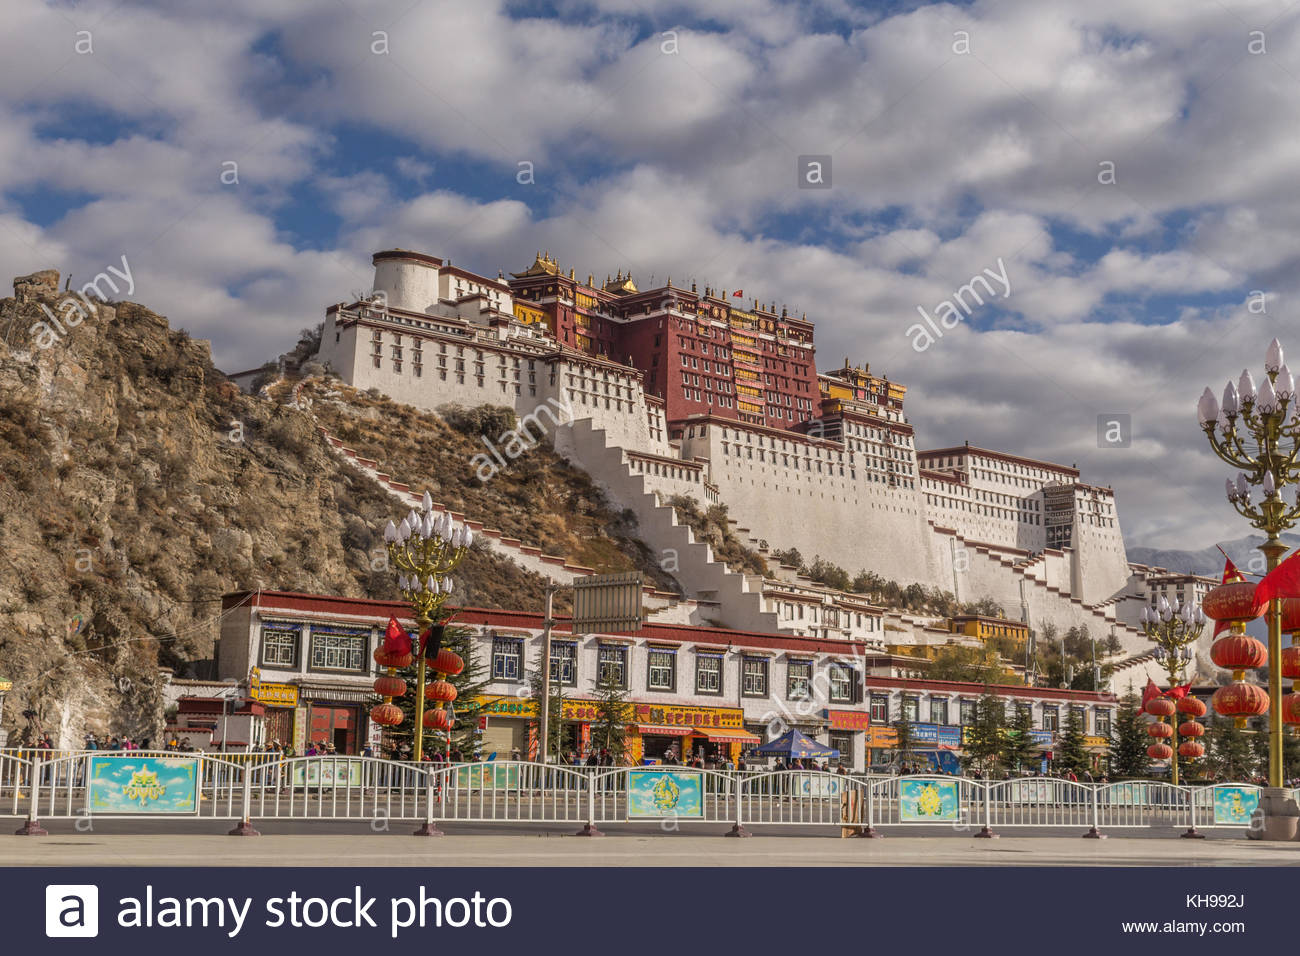 The Potala Palace in Tibet - Stock Image